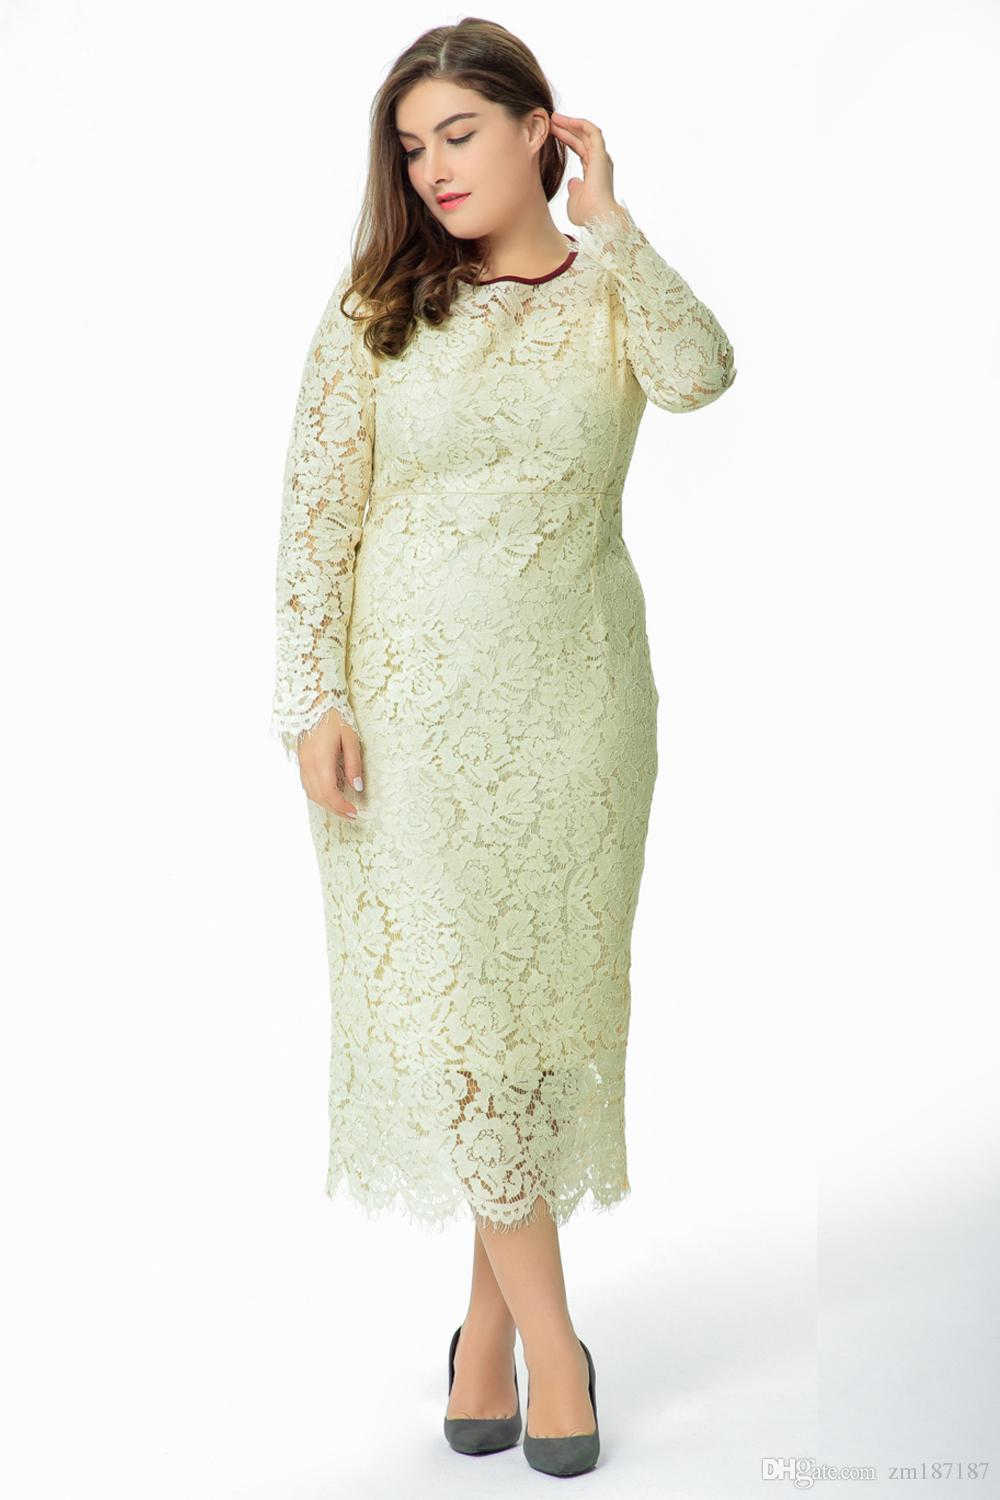 2017 autumn new European and American large-size long-sleeved lace self-cultivation dress in the long section of the dress